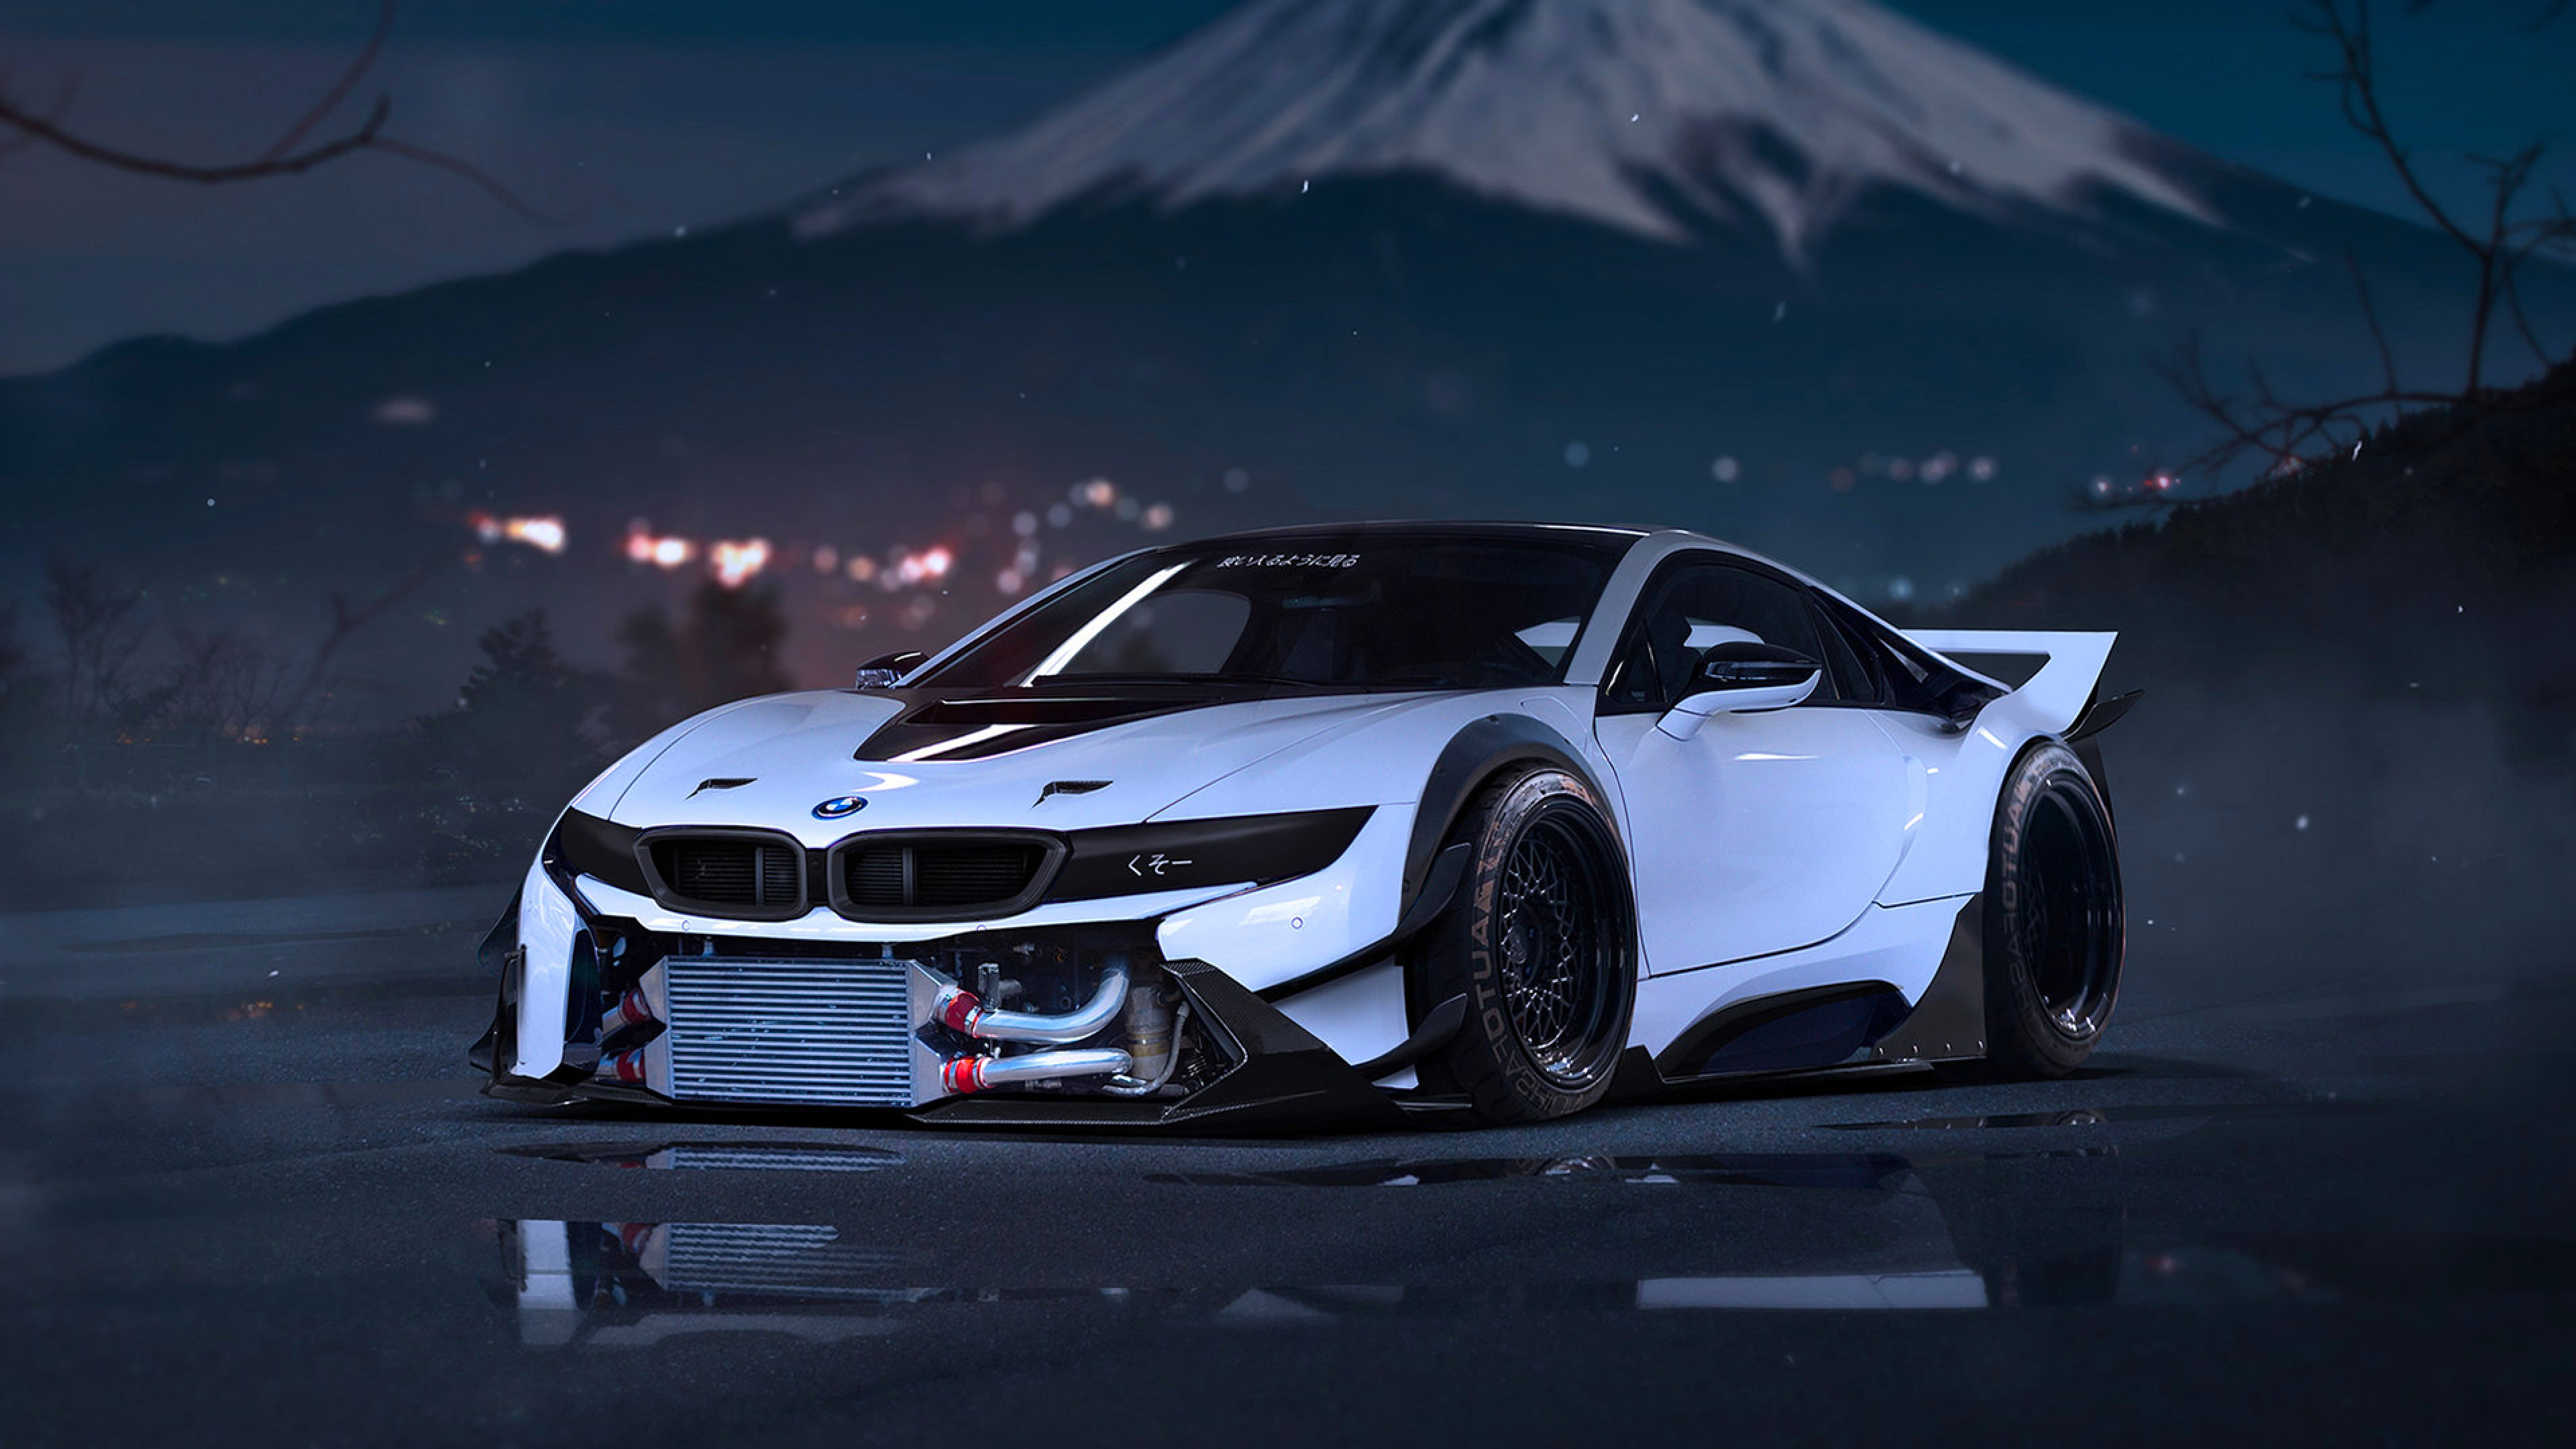 Logo Bmw Hd >> Bmw i8 Tuned, HD Cars, 4k Wallpapers, Images, Backgrounds, Photos and Pictures